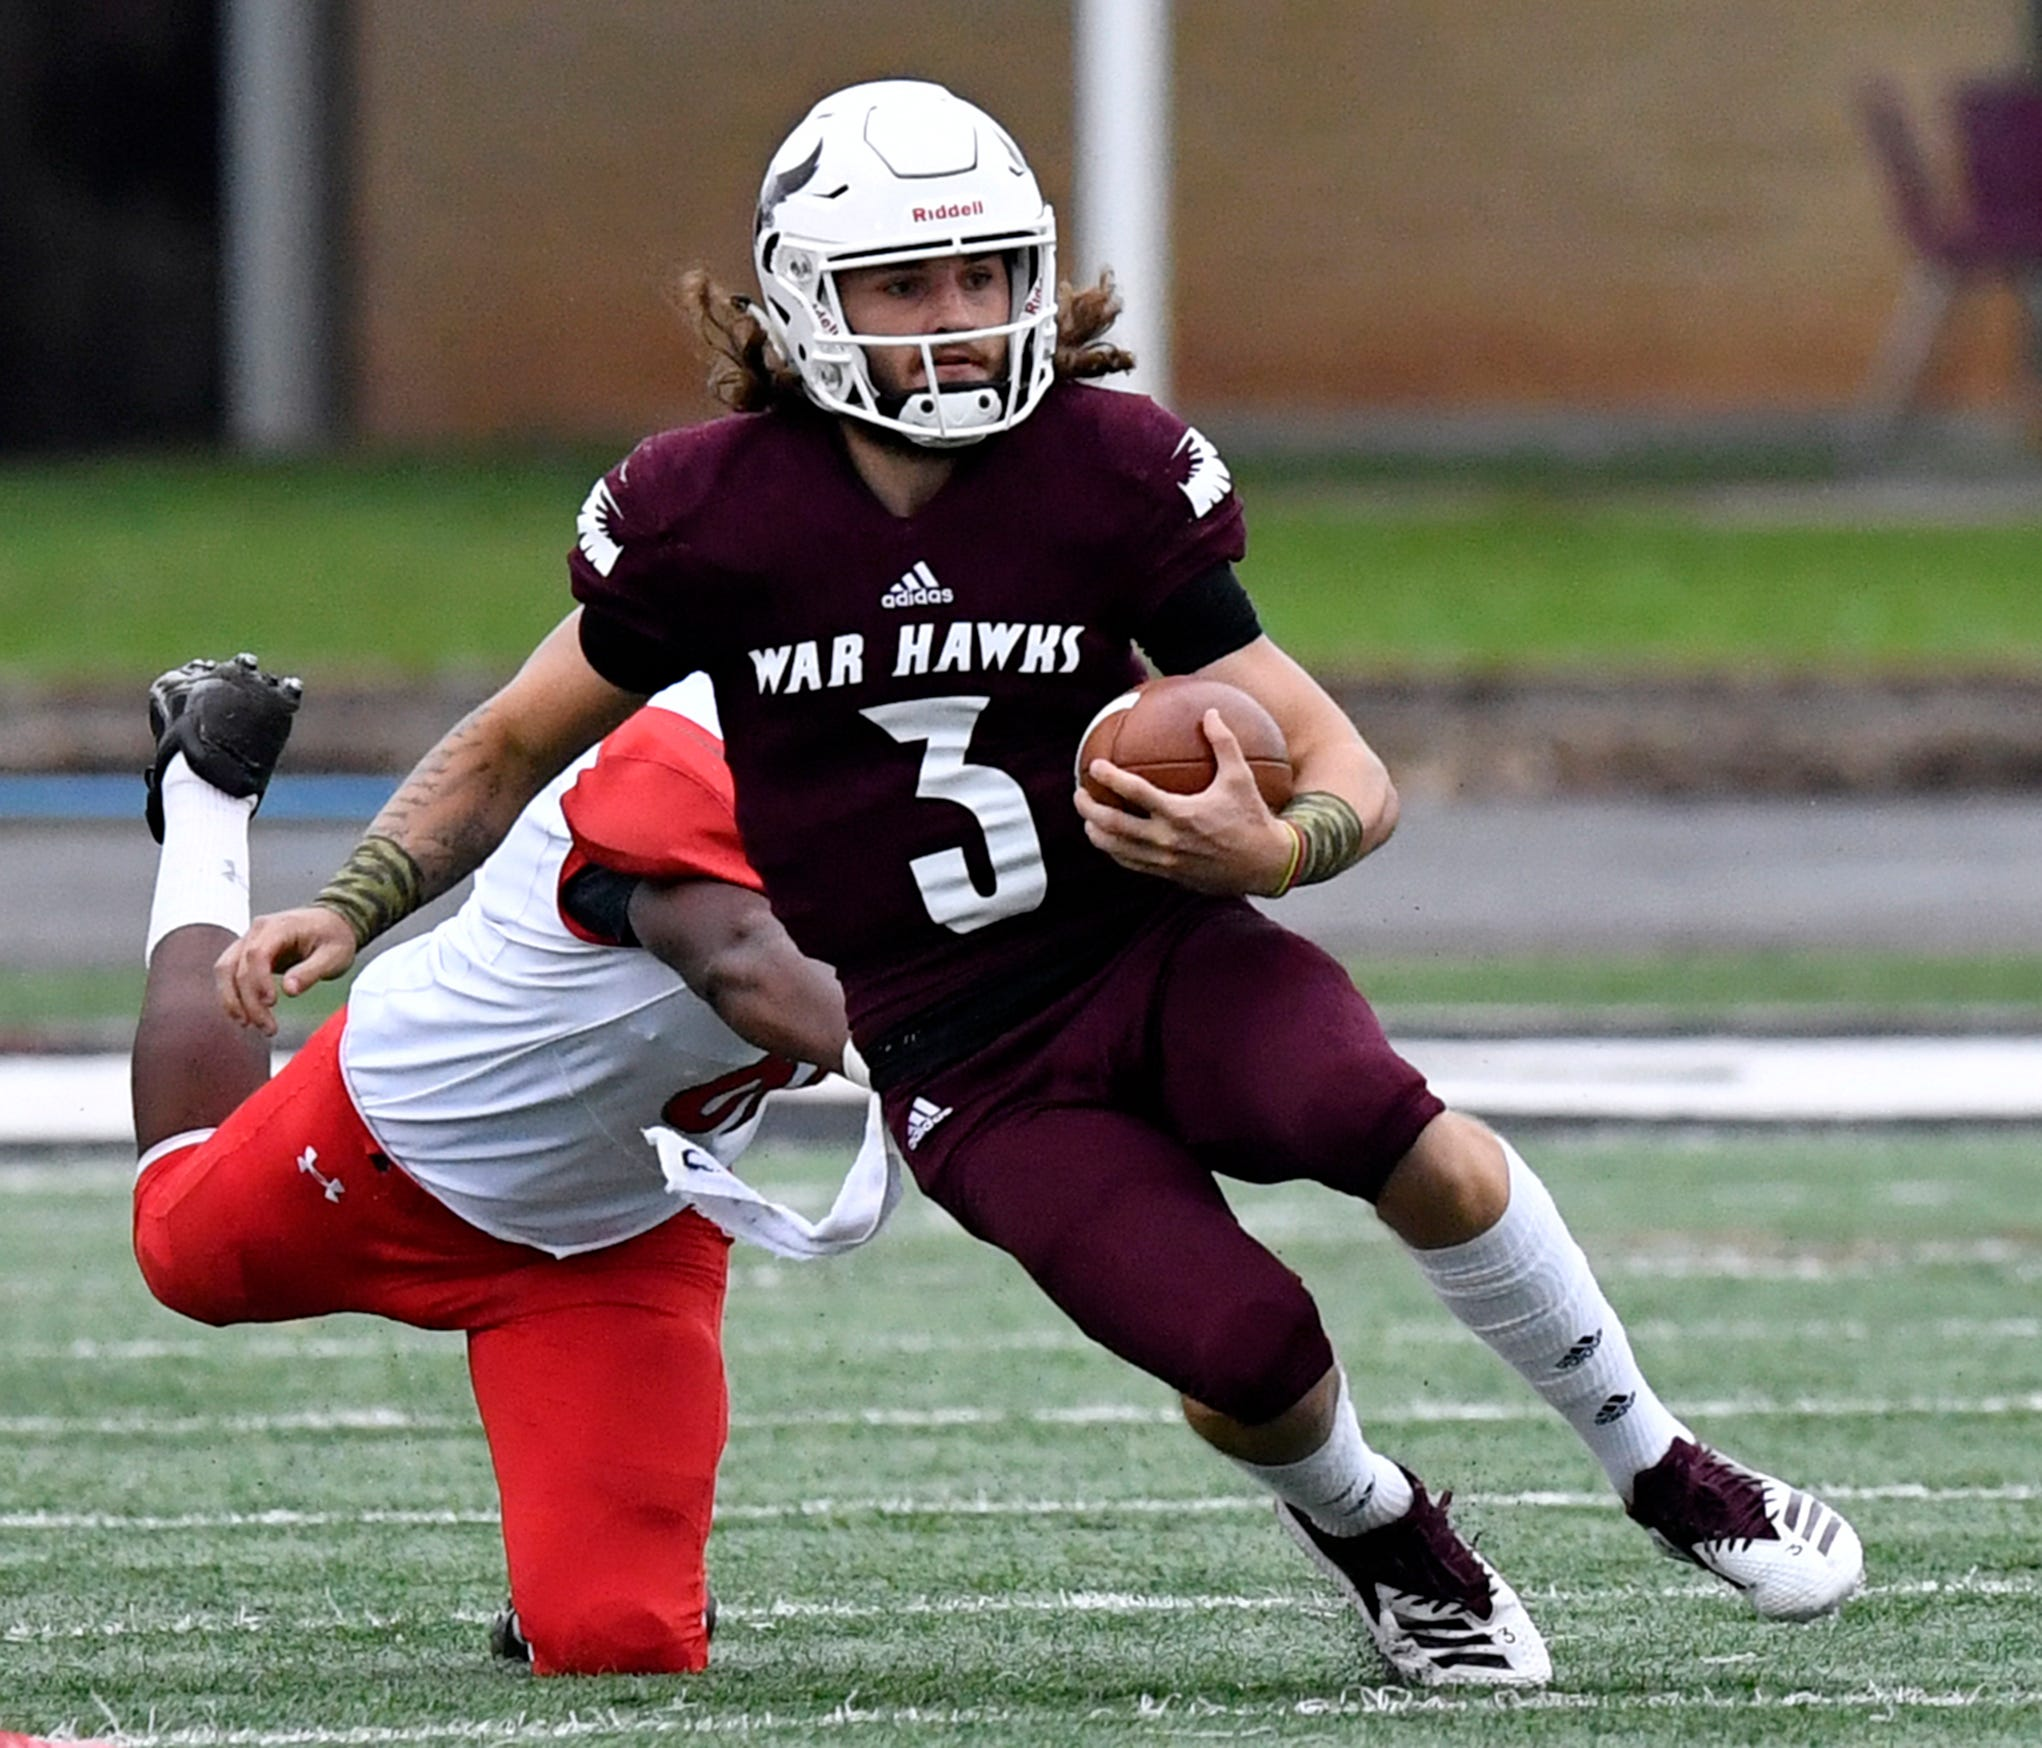 War Hawks quarterback Kevin Hurley, Jr. scrambles during McMurry's game against Sul Ross in Abilene Saturday Sept. 22, 2018. McMurry won, 35-24.